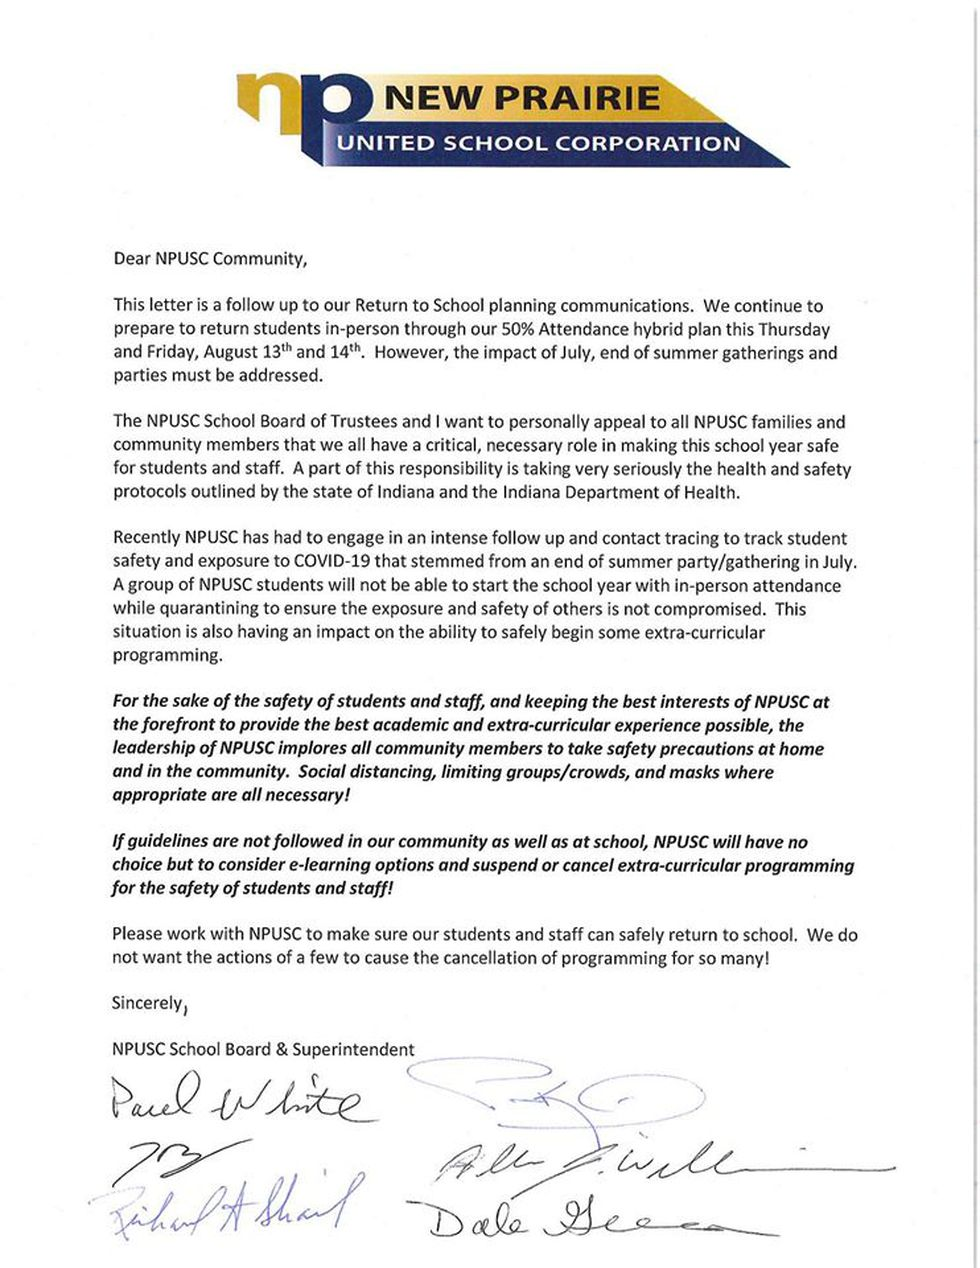 Letter to New Prairie Community